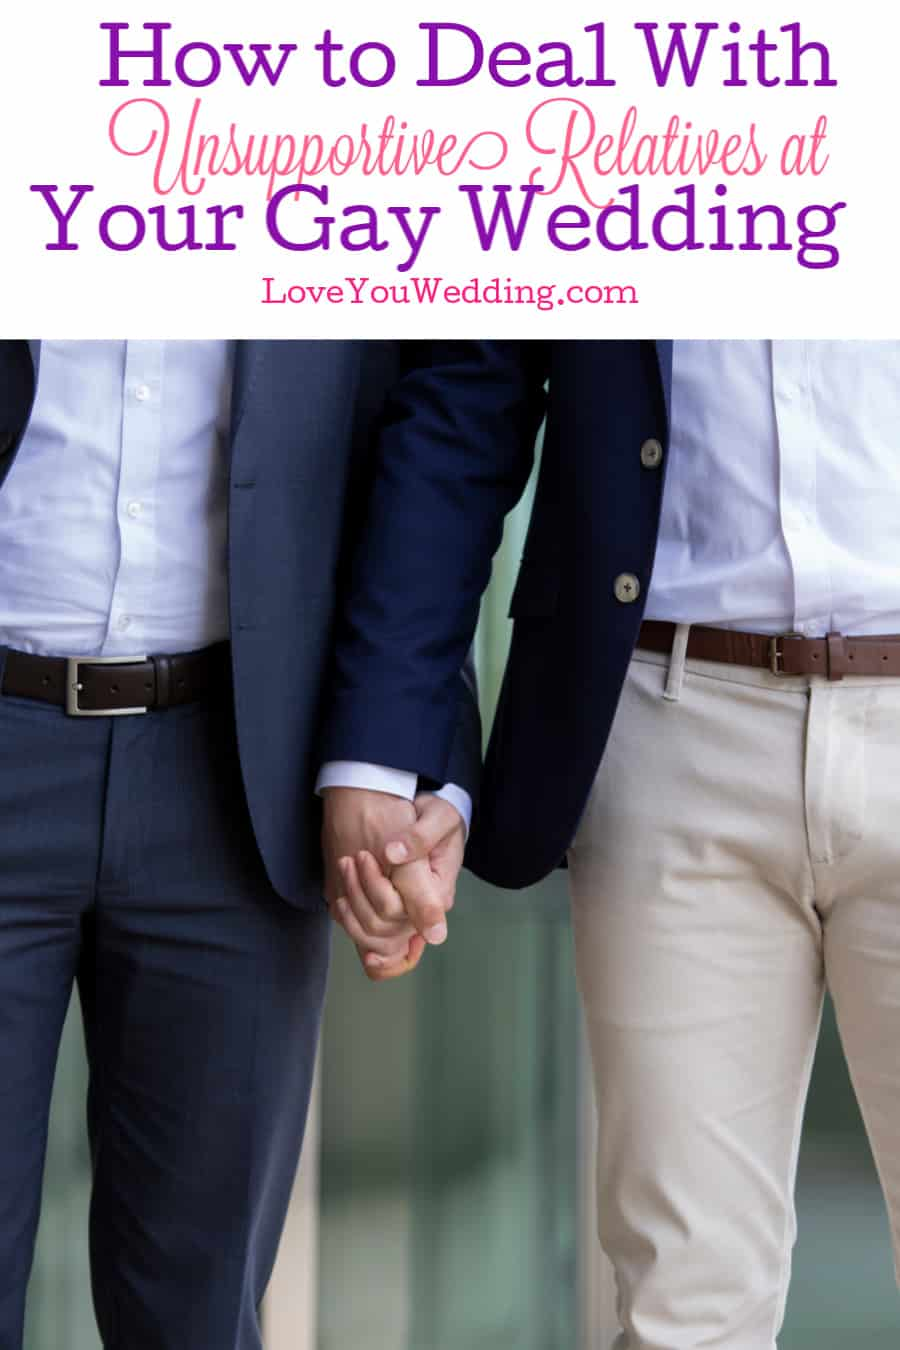 How do you cope with unsupportive relatives at your same-sex wedding? It's not easy, but these tips will help. Take a look.